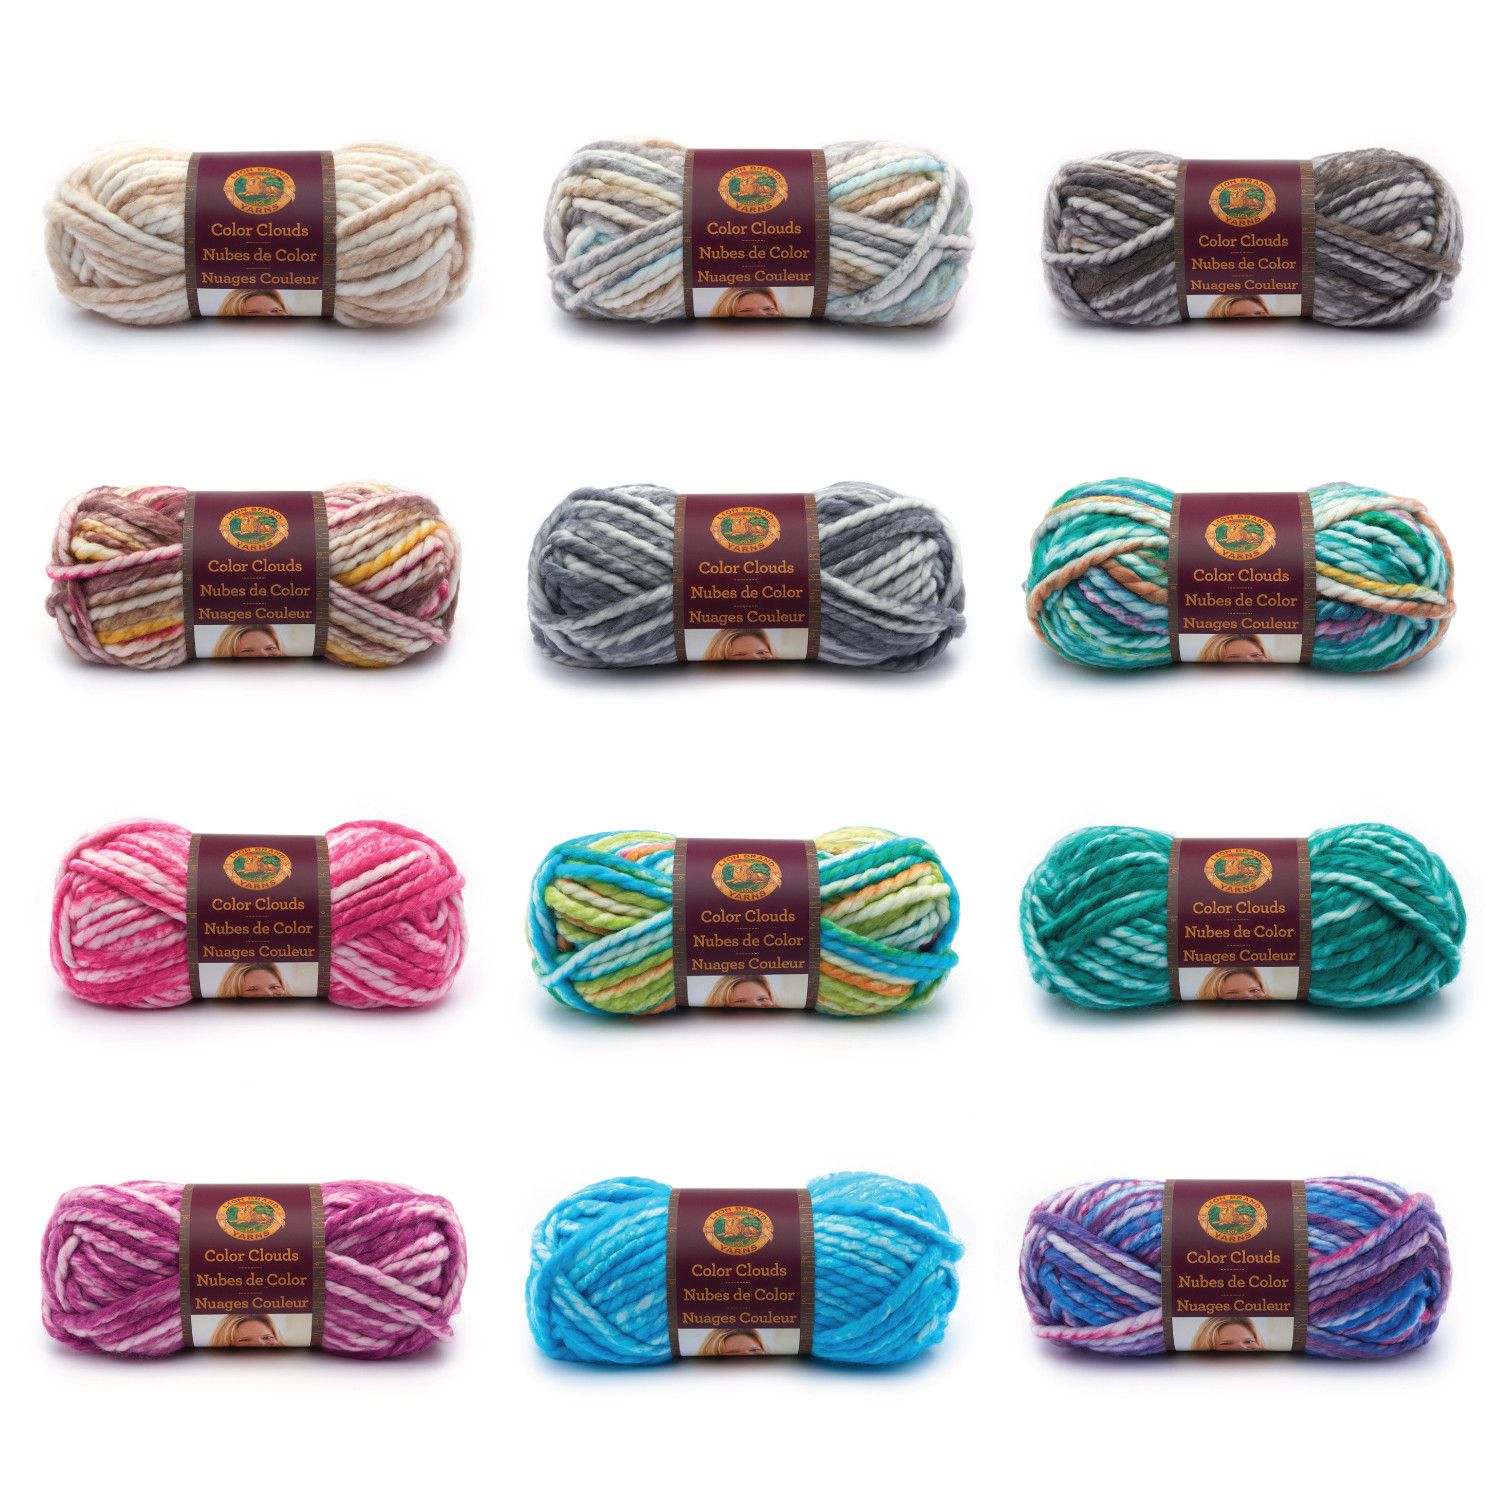 Lion Brand Yarn Luxury Wrap Up This Winter with Color Clouds Of Delightful 49 Models Lion Brand Yarn